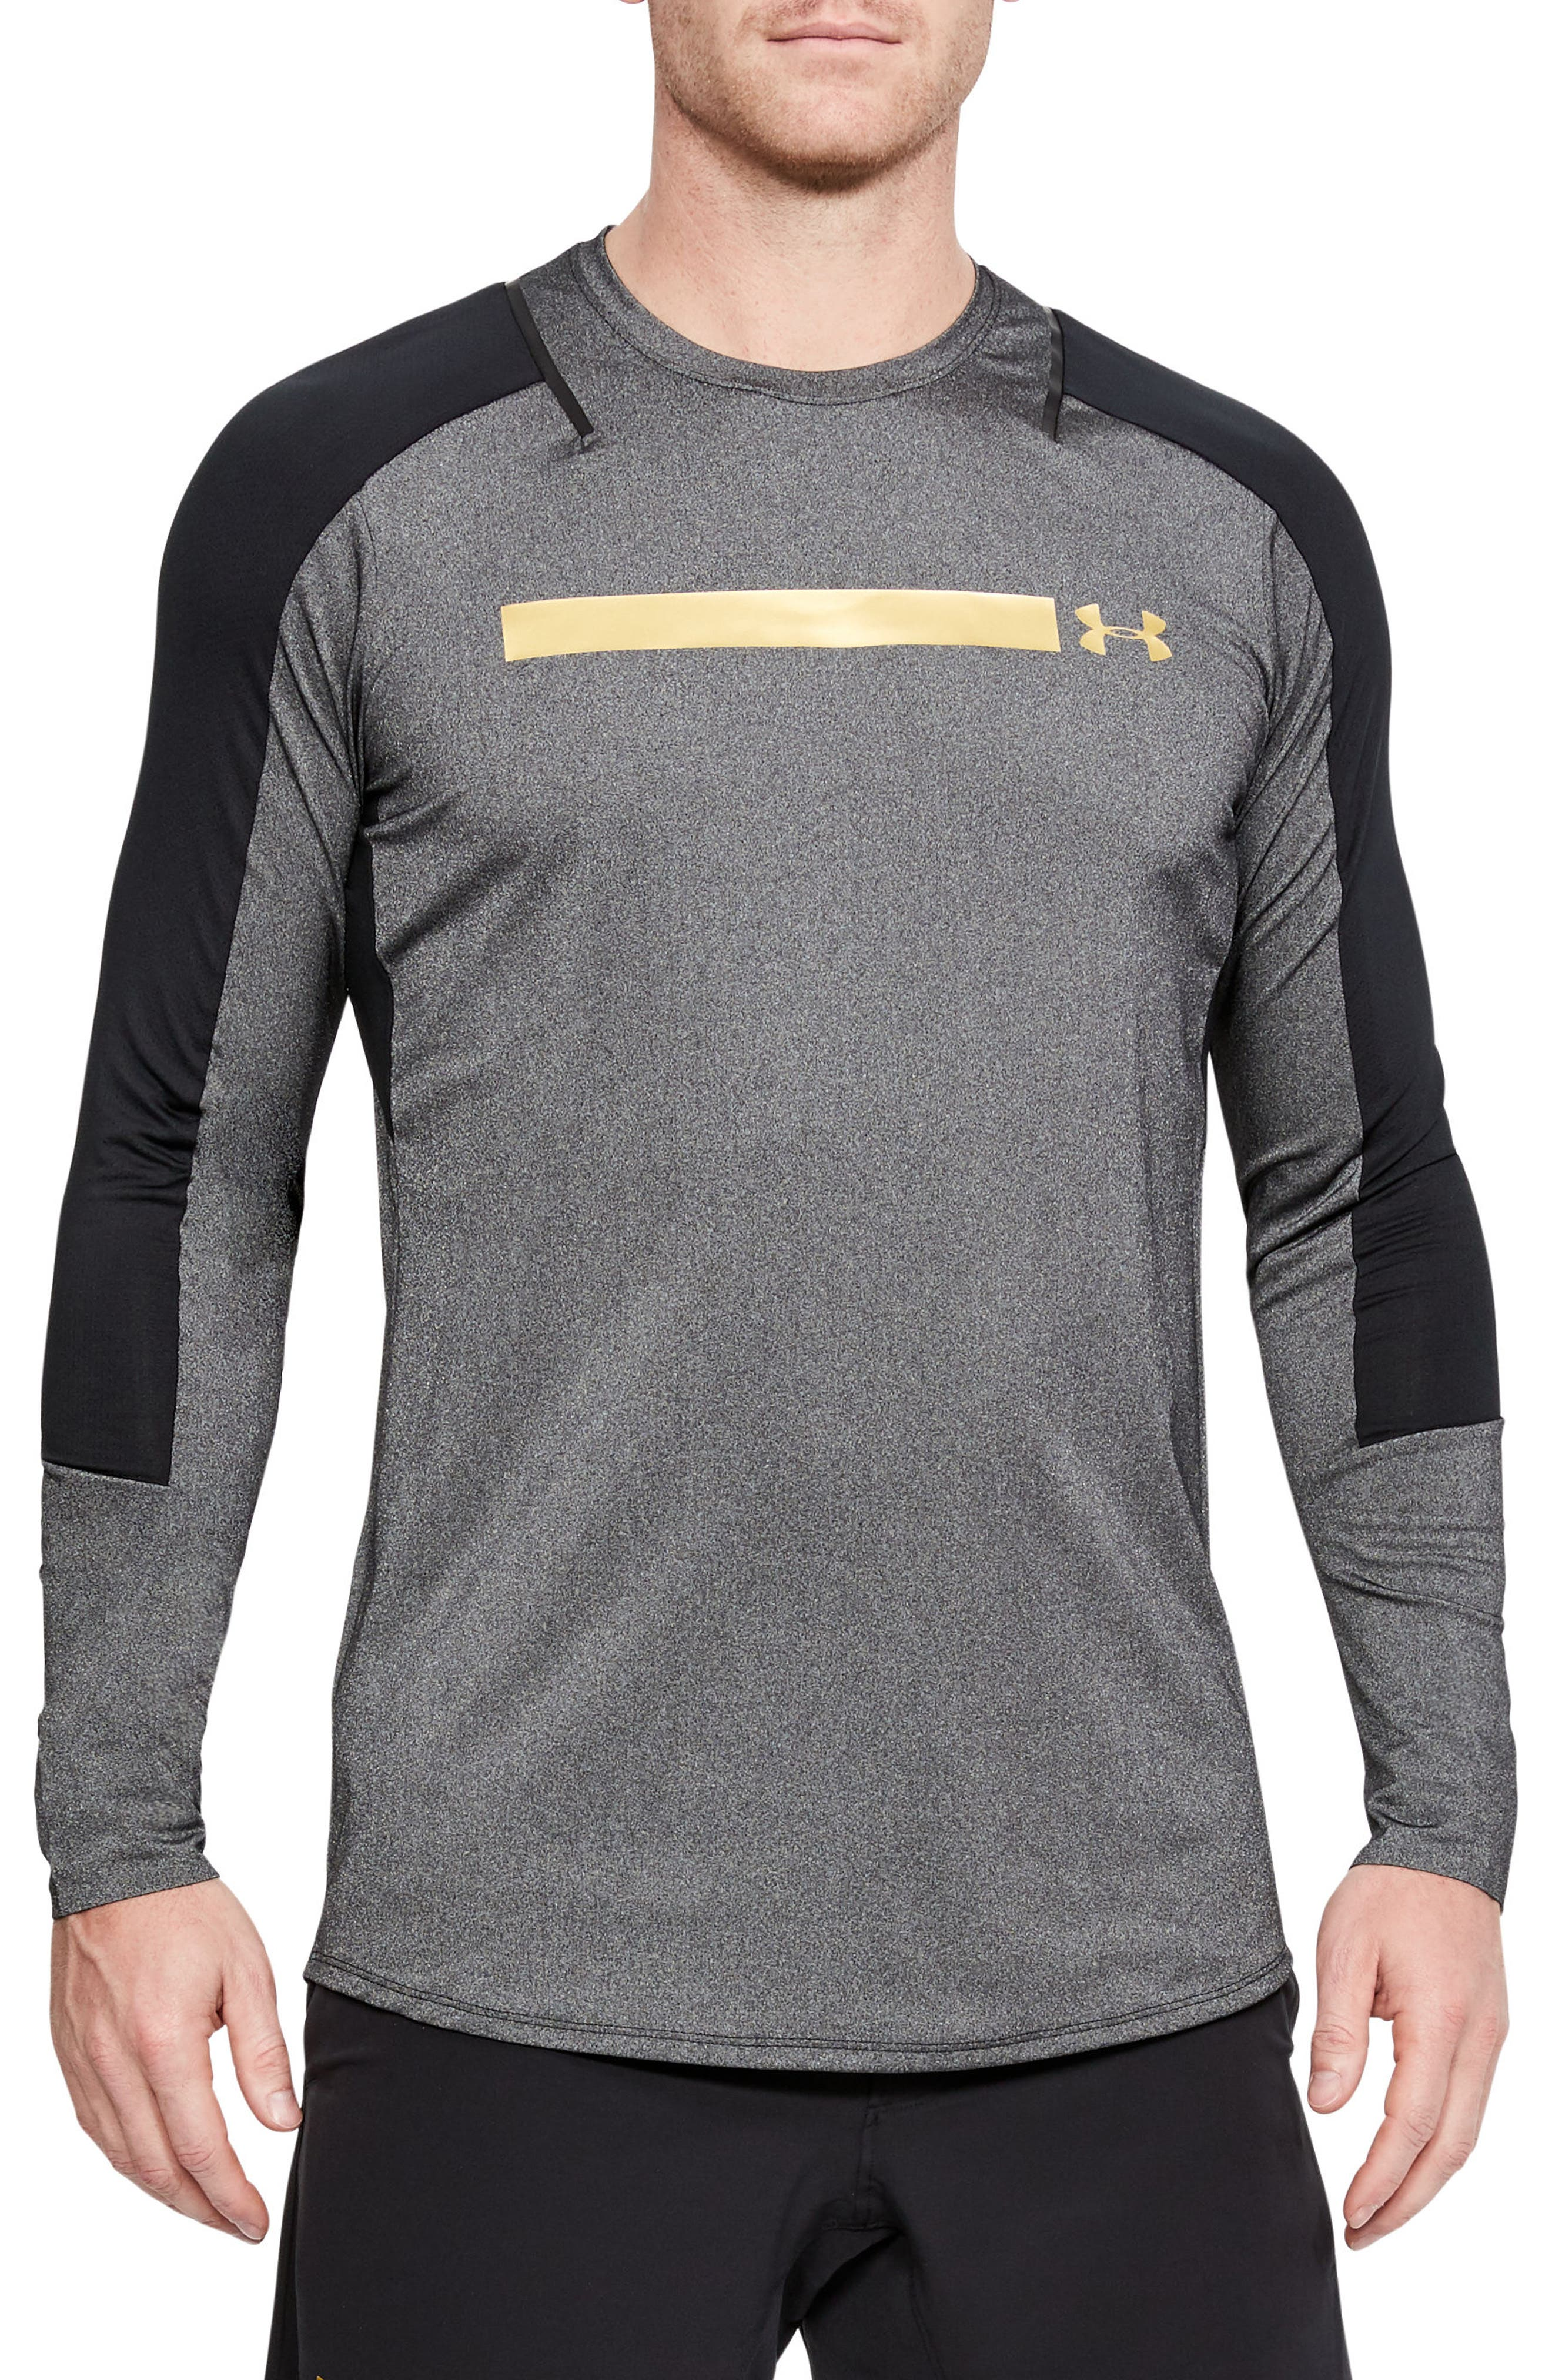 Perpetual Fitted Long-Sleeve Shirt,                         Main,                         color, Black/ Metallic Victory Gold